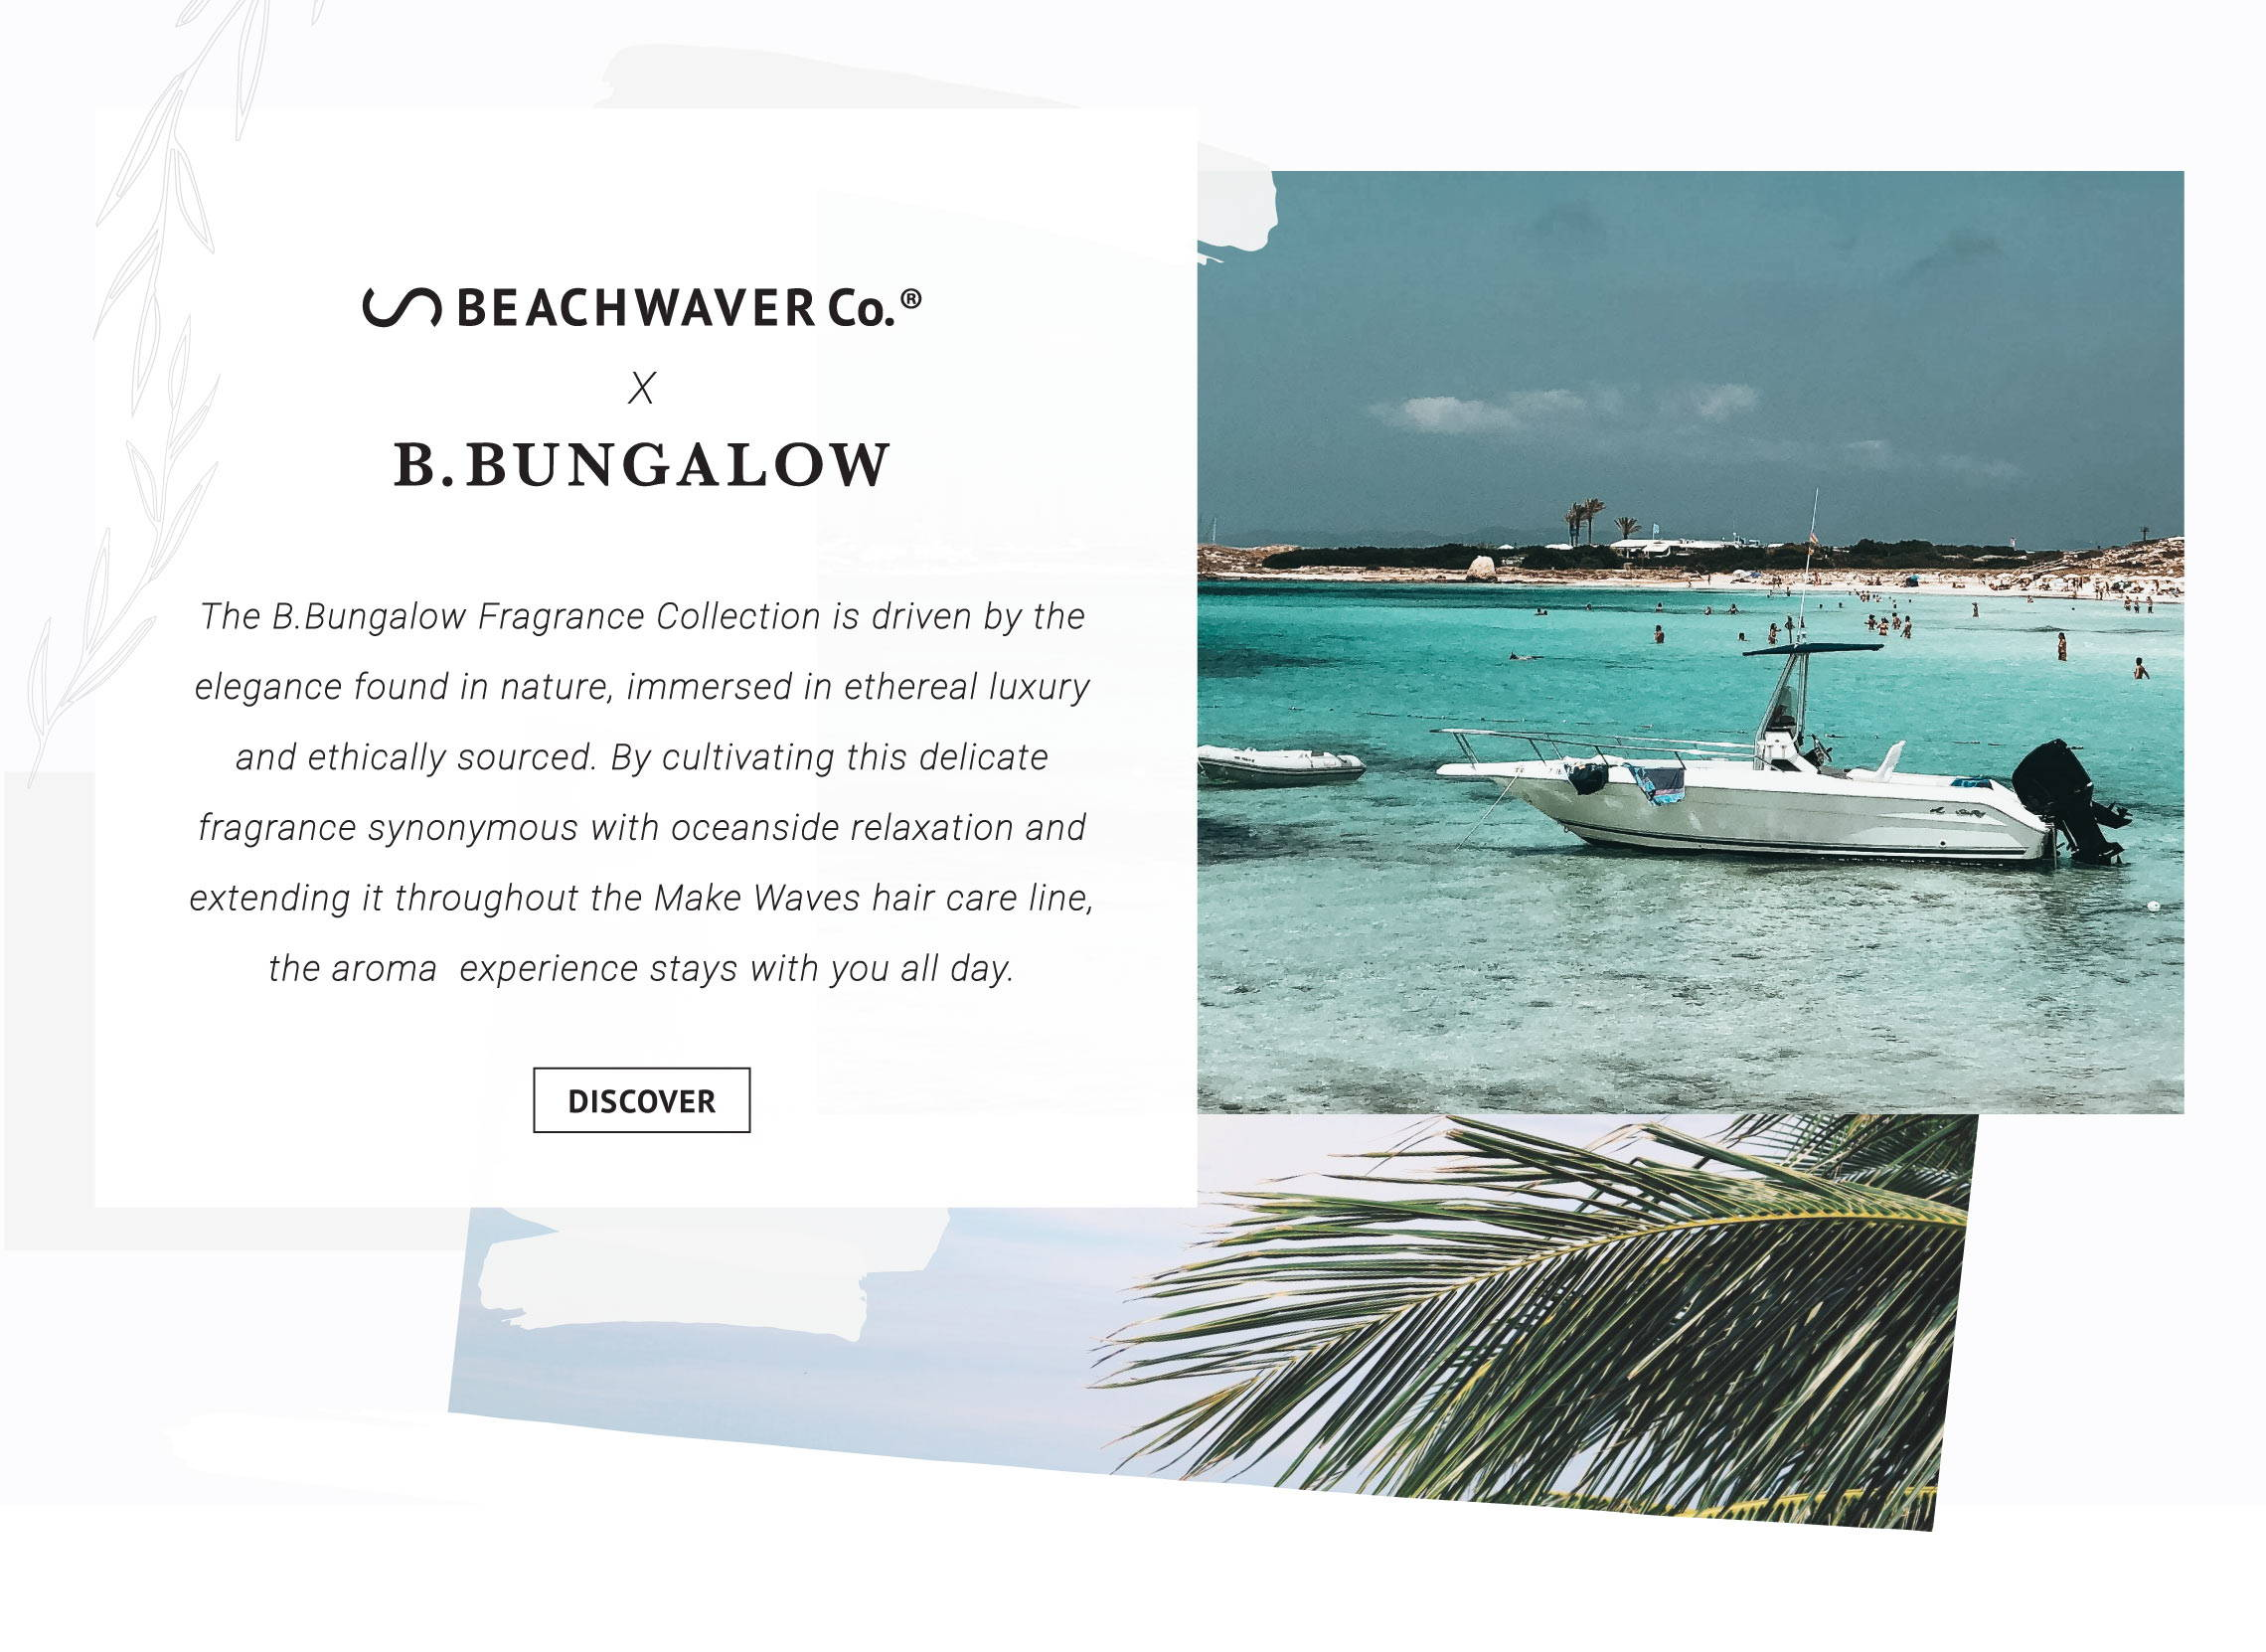 Beachwaver and B. Bungalow have collaborated to bring you delicate fragrances evocative of nature and the beach.